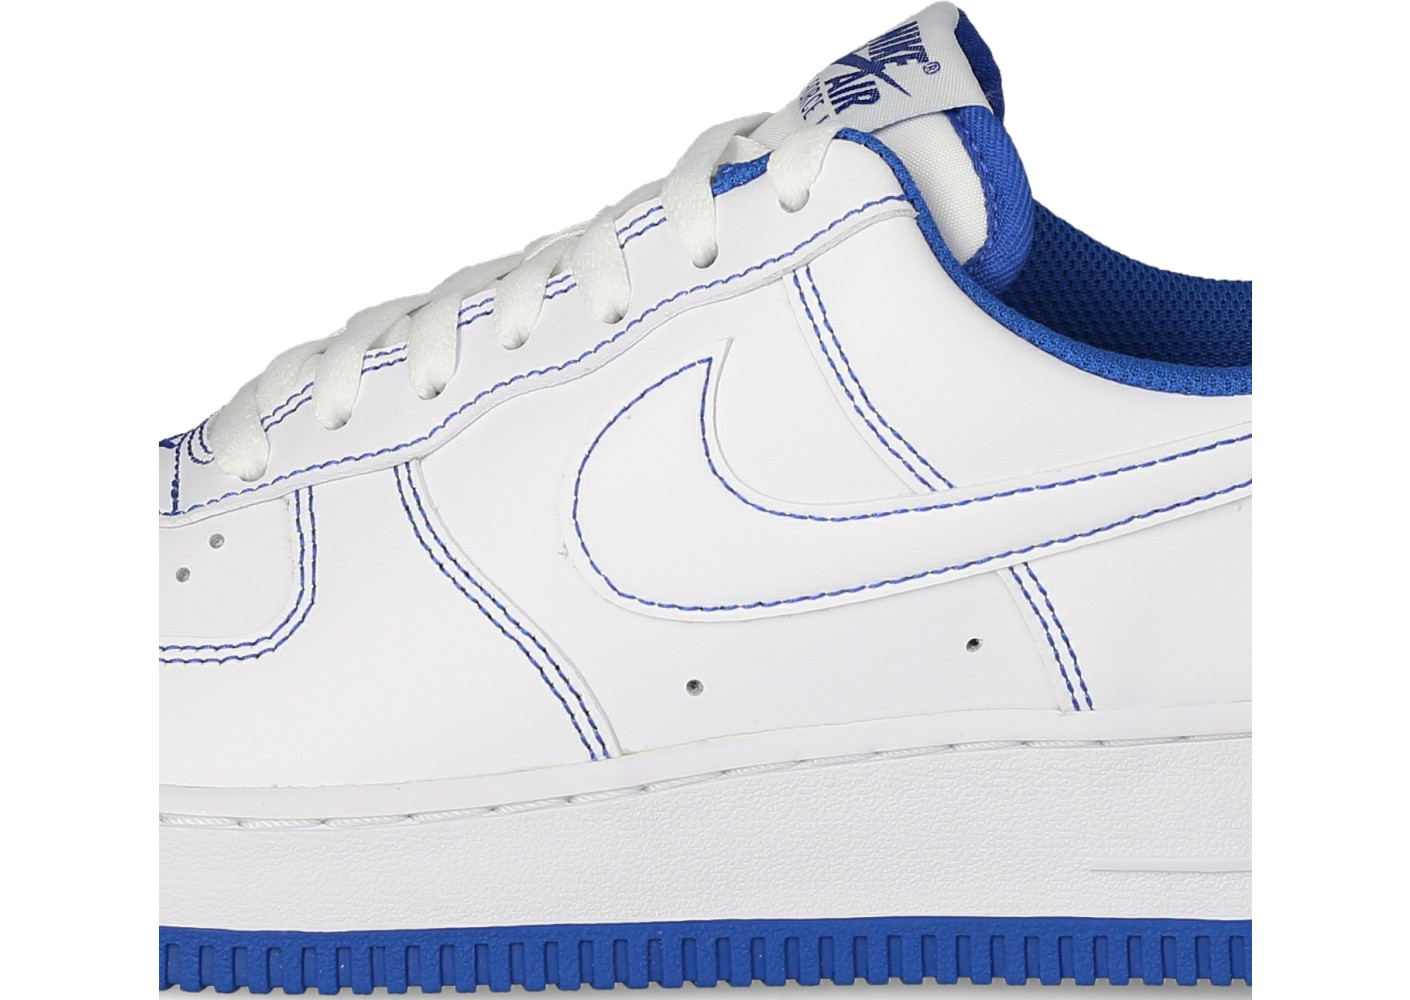 Nike Air Force 1 Homme Stitch blanche et bleu royal - Chaussures ...